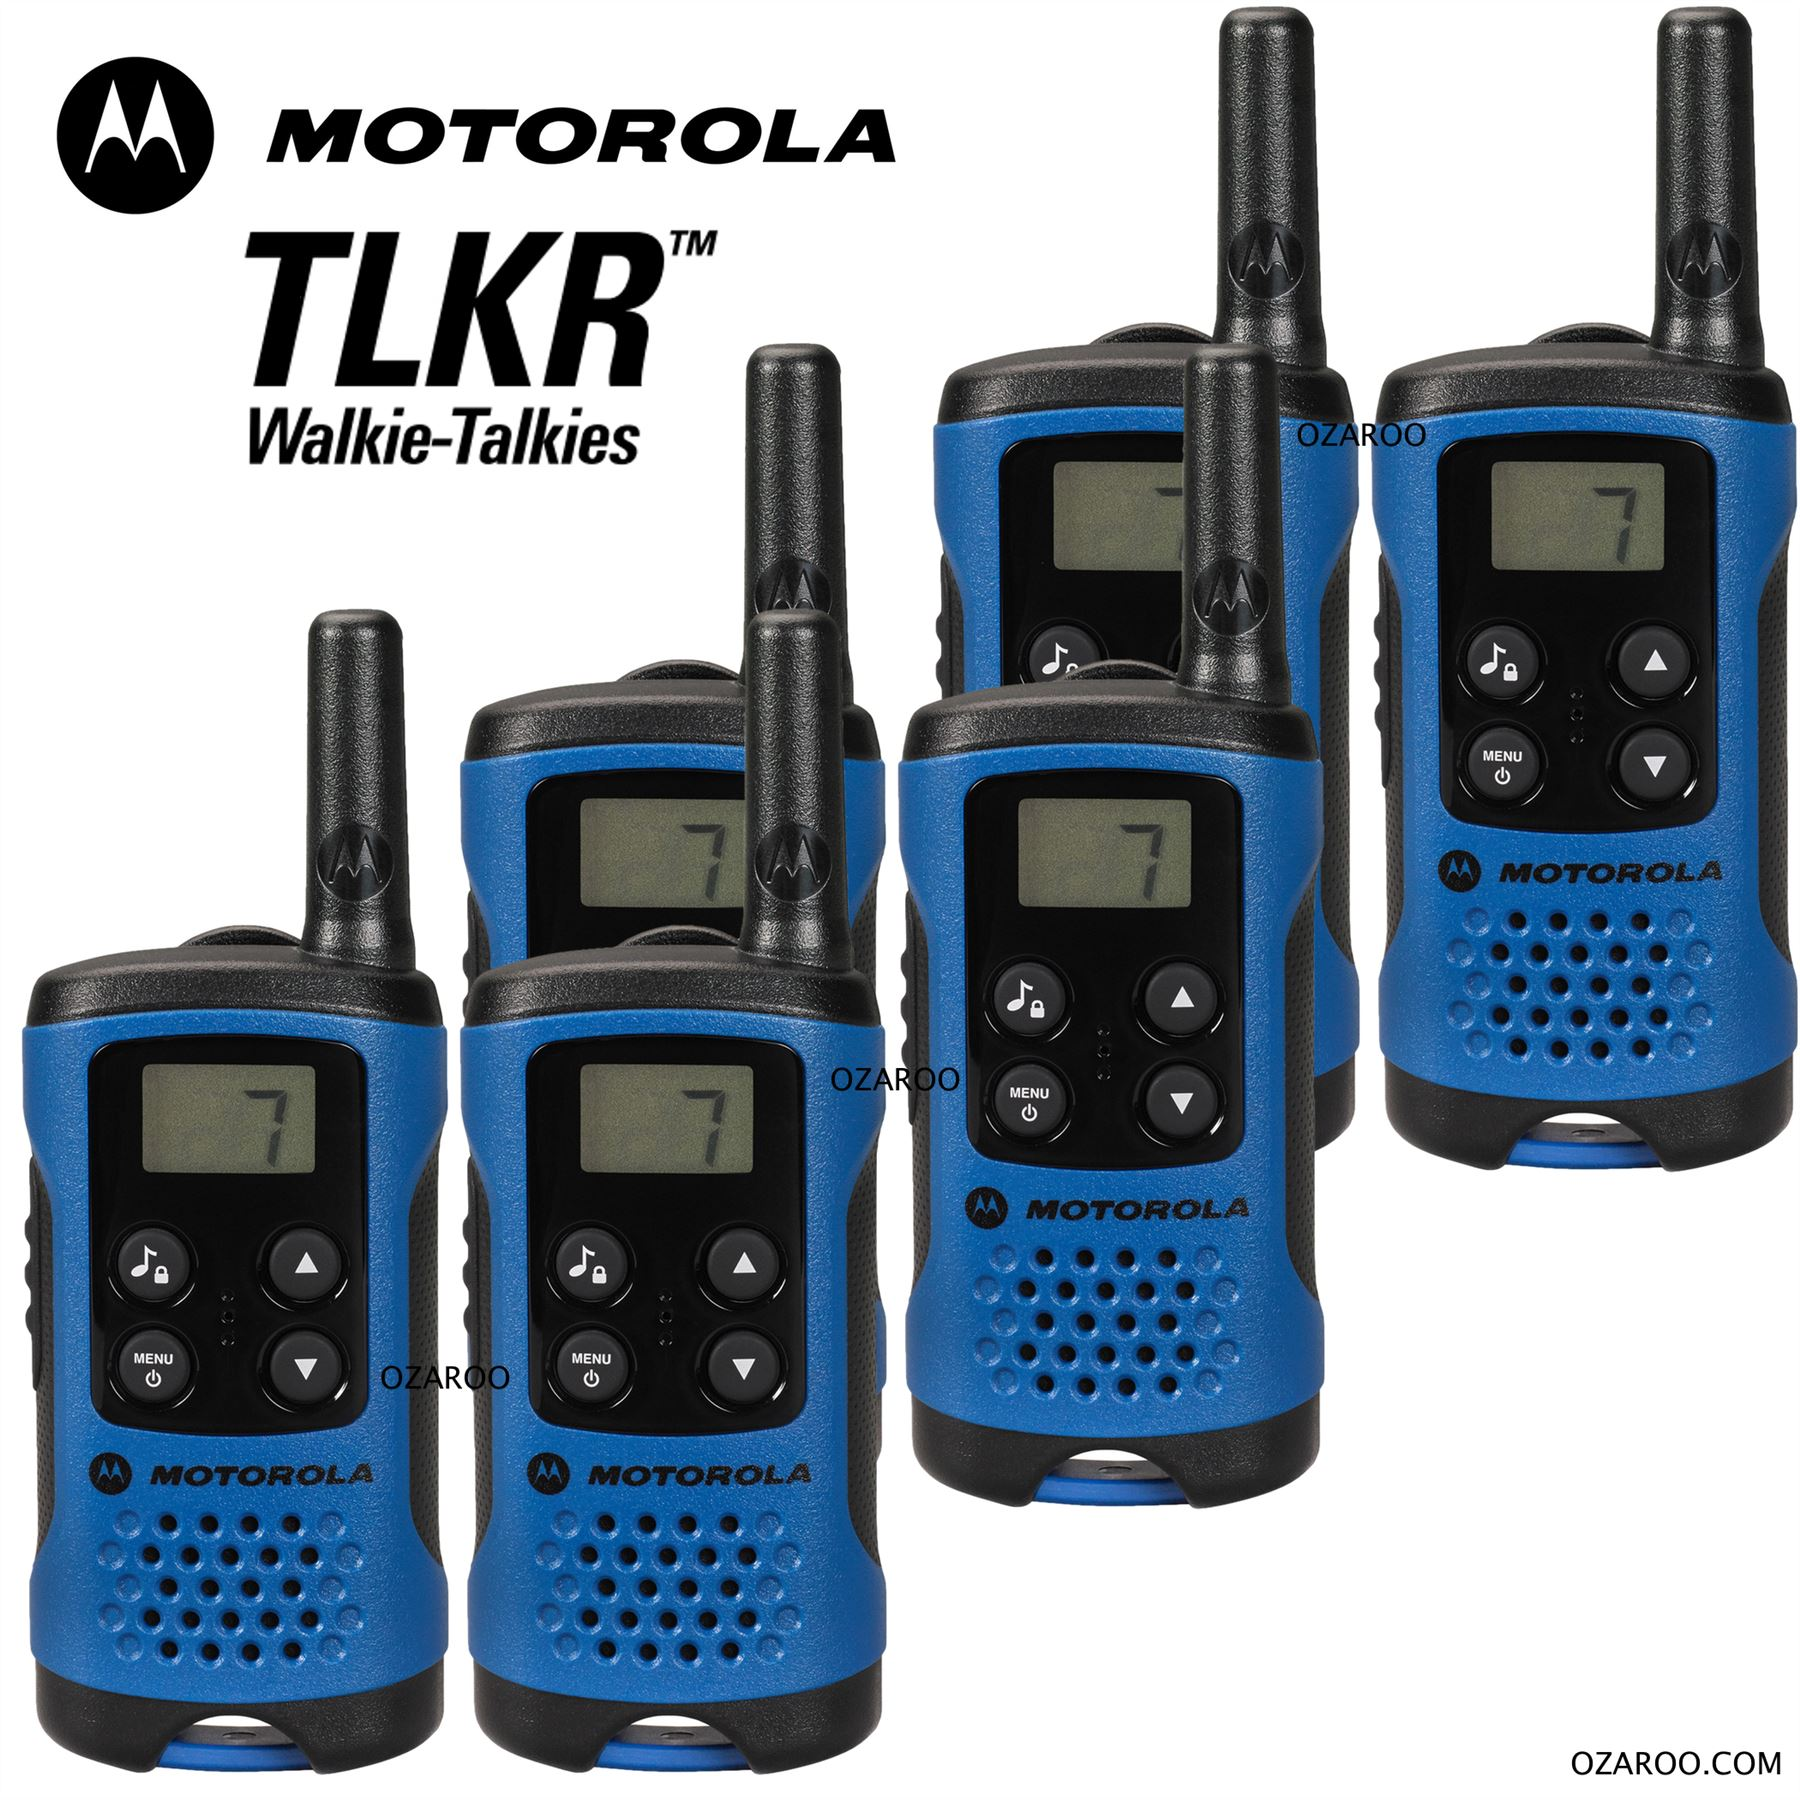 6 x motorola tlkr t41 2 way walkie talkie set pmr 446. Black Bedroom Furniture Sets. Home Design Ideas